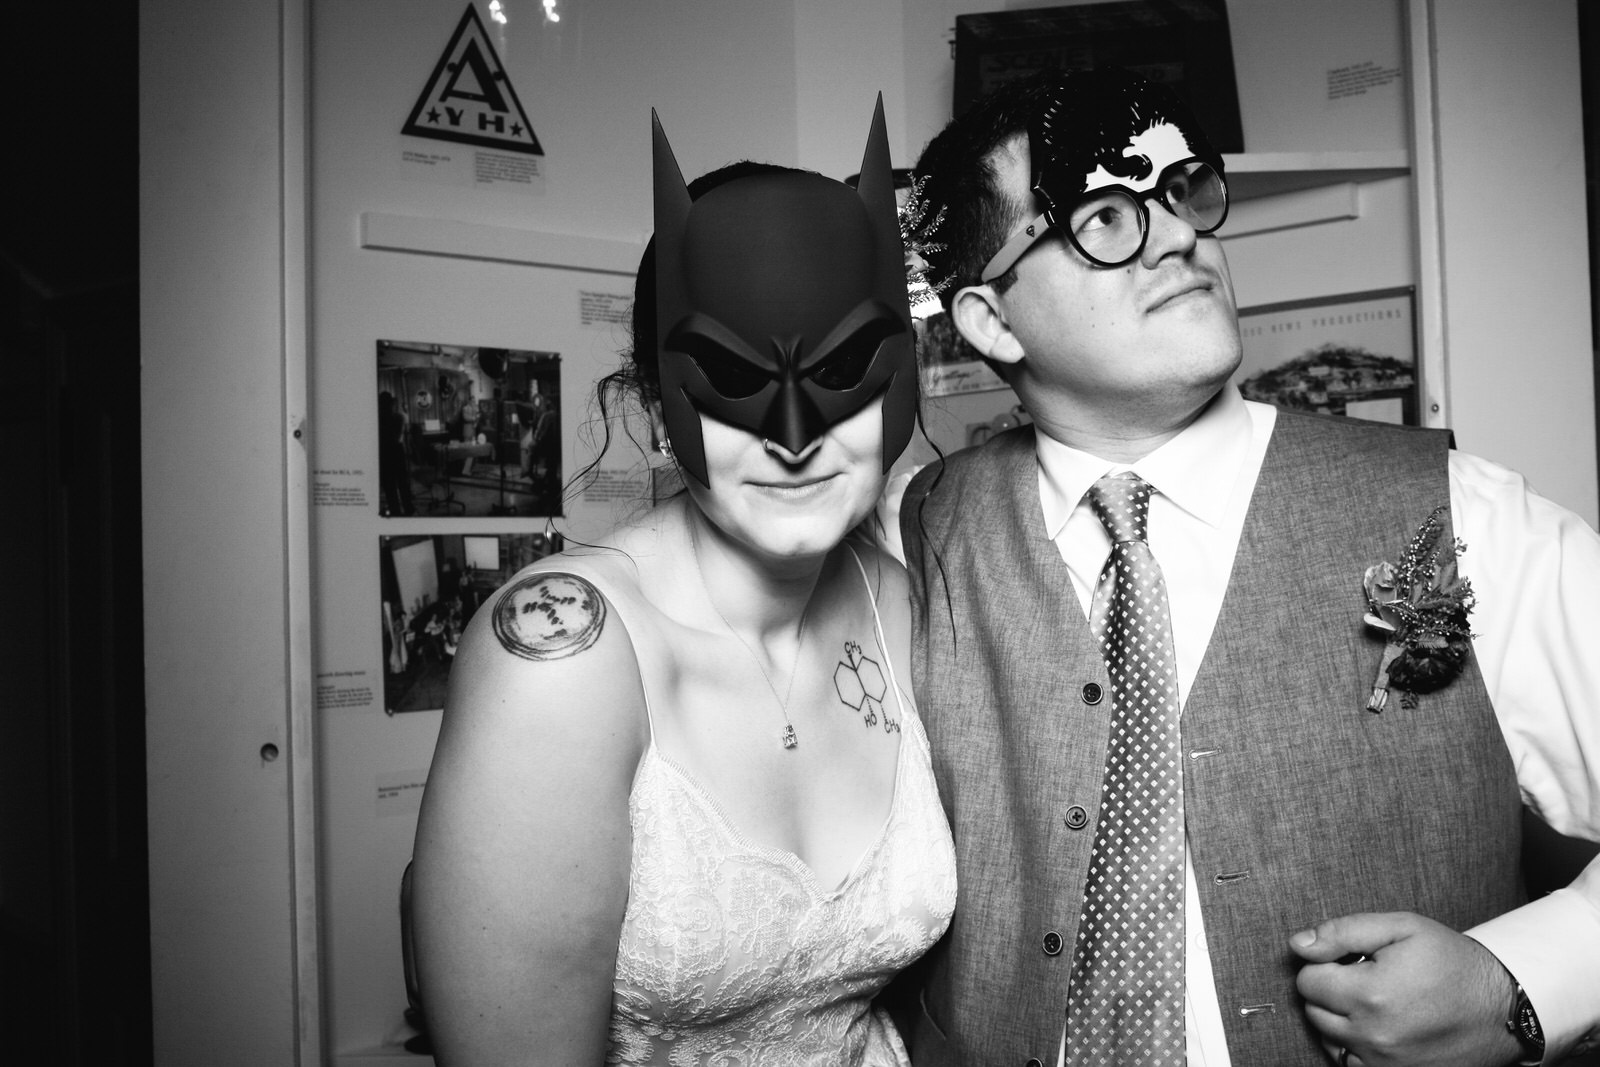 Richard-Donna-Wedding-Photo-Booth-16.jpg